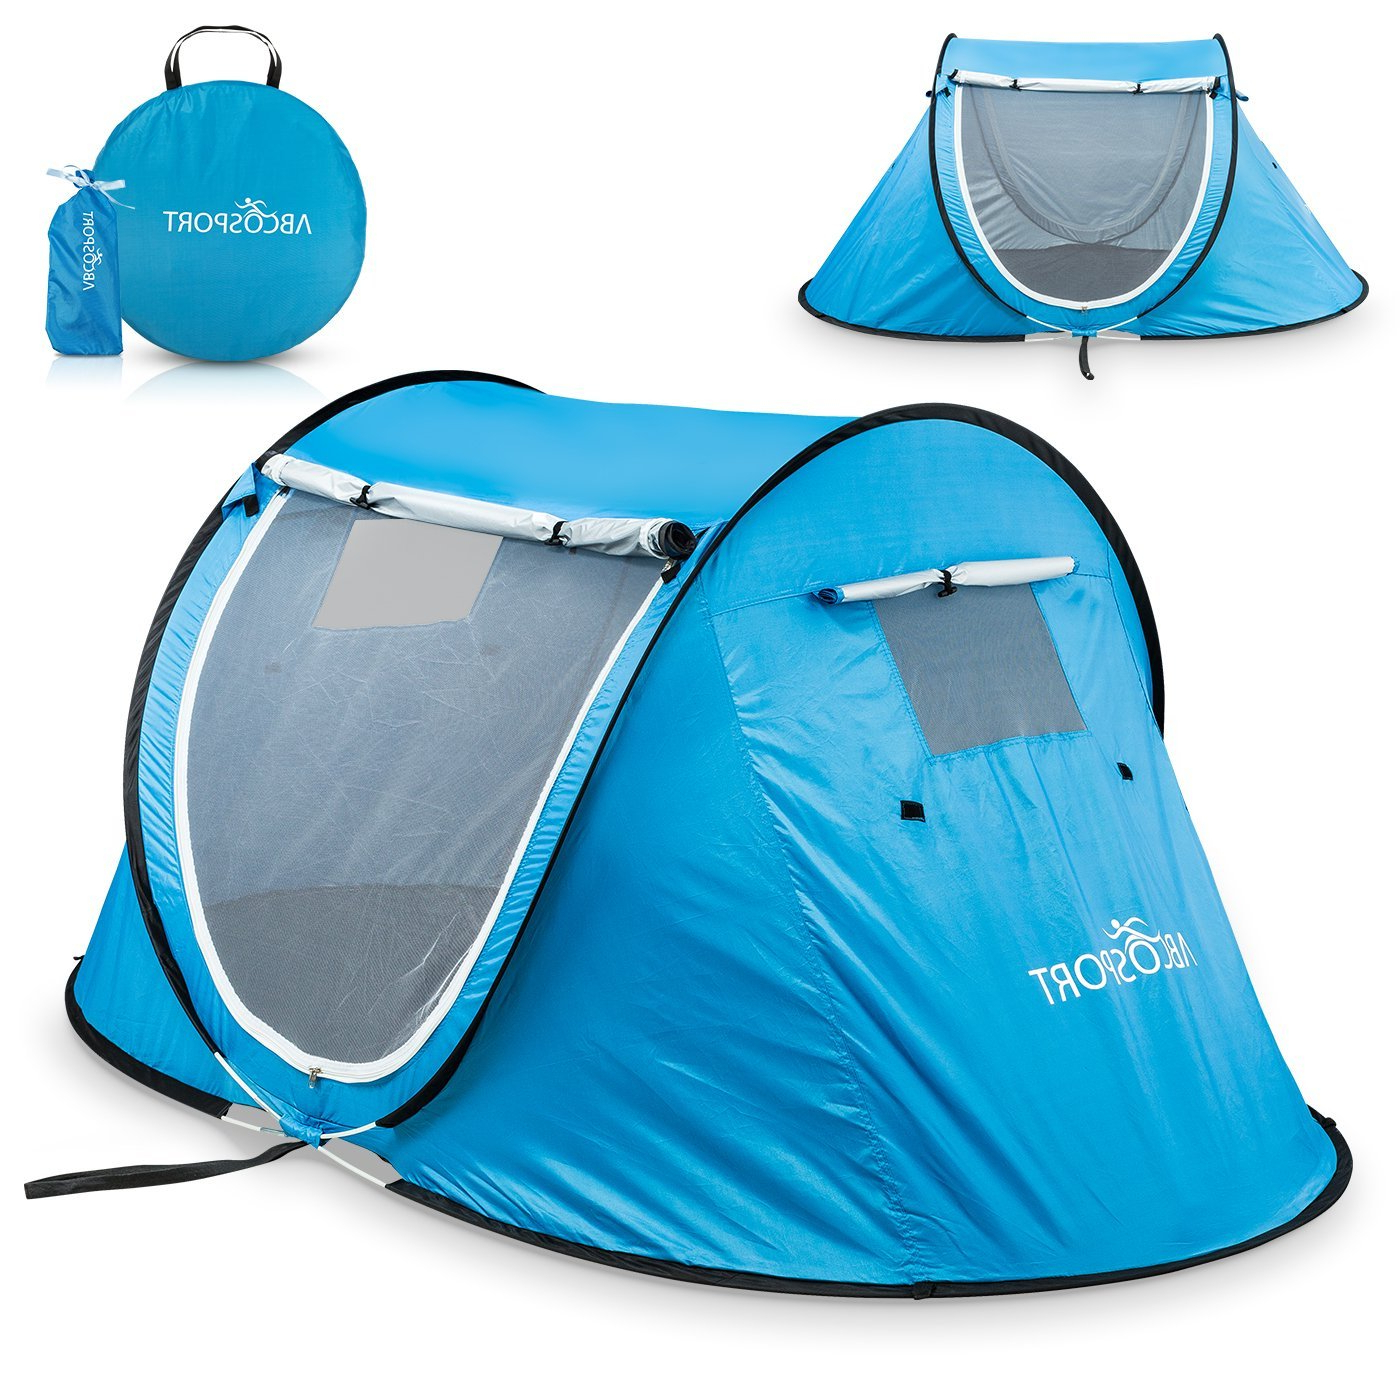 Best Beach Tents With Easy Pop Up 2019 In Most Popular Total Sun Block Extreme Shade Beach Umbrellas (View 19 of 20)